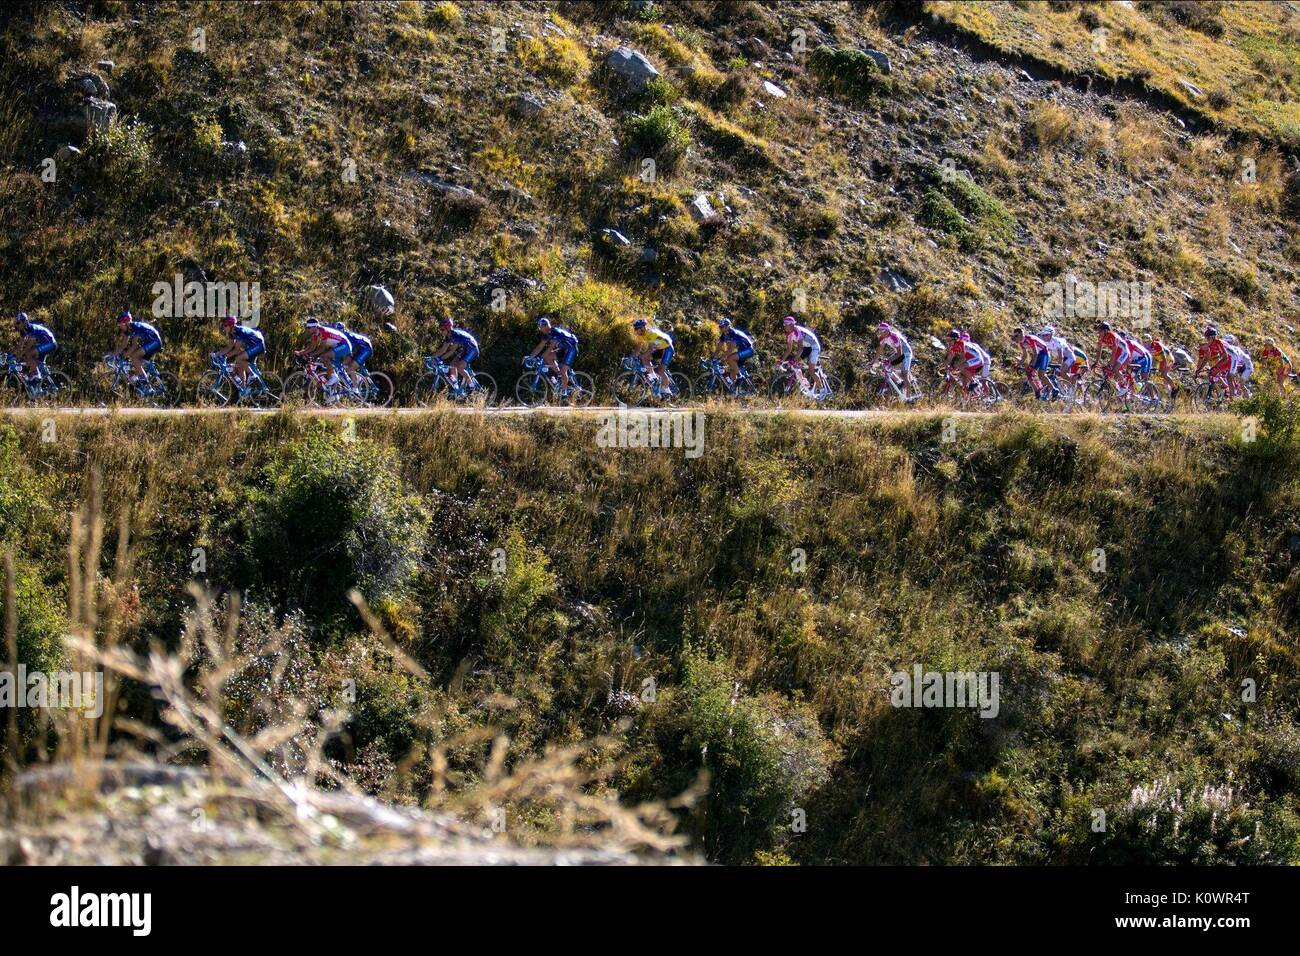 CYCLISTS THE PROGRAM (2015) - Stock Image